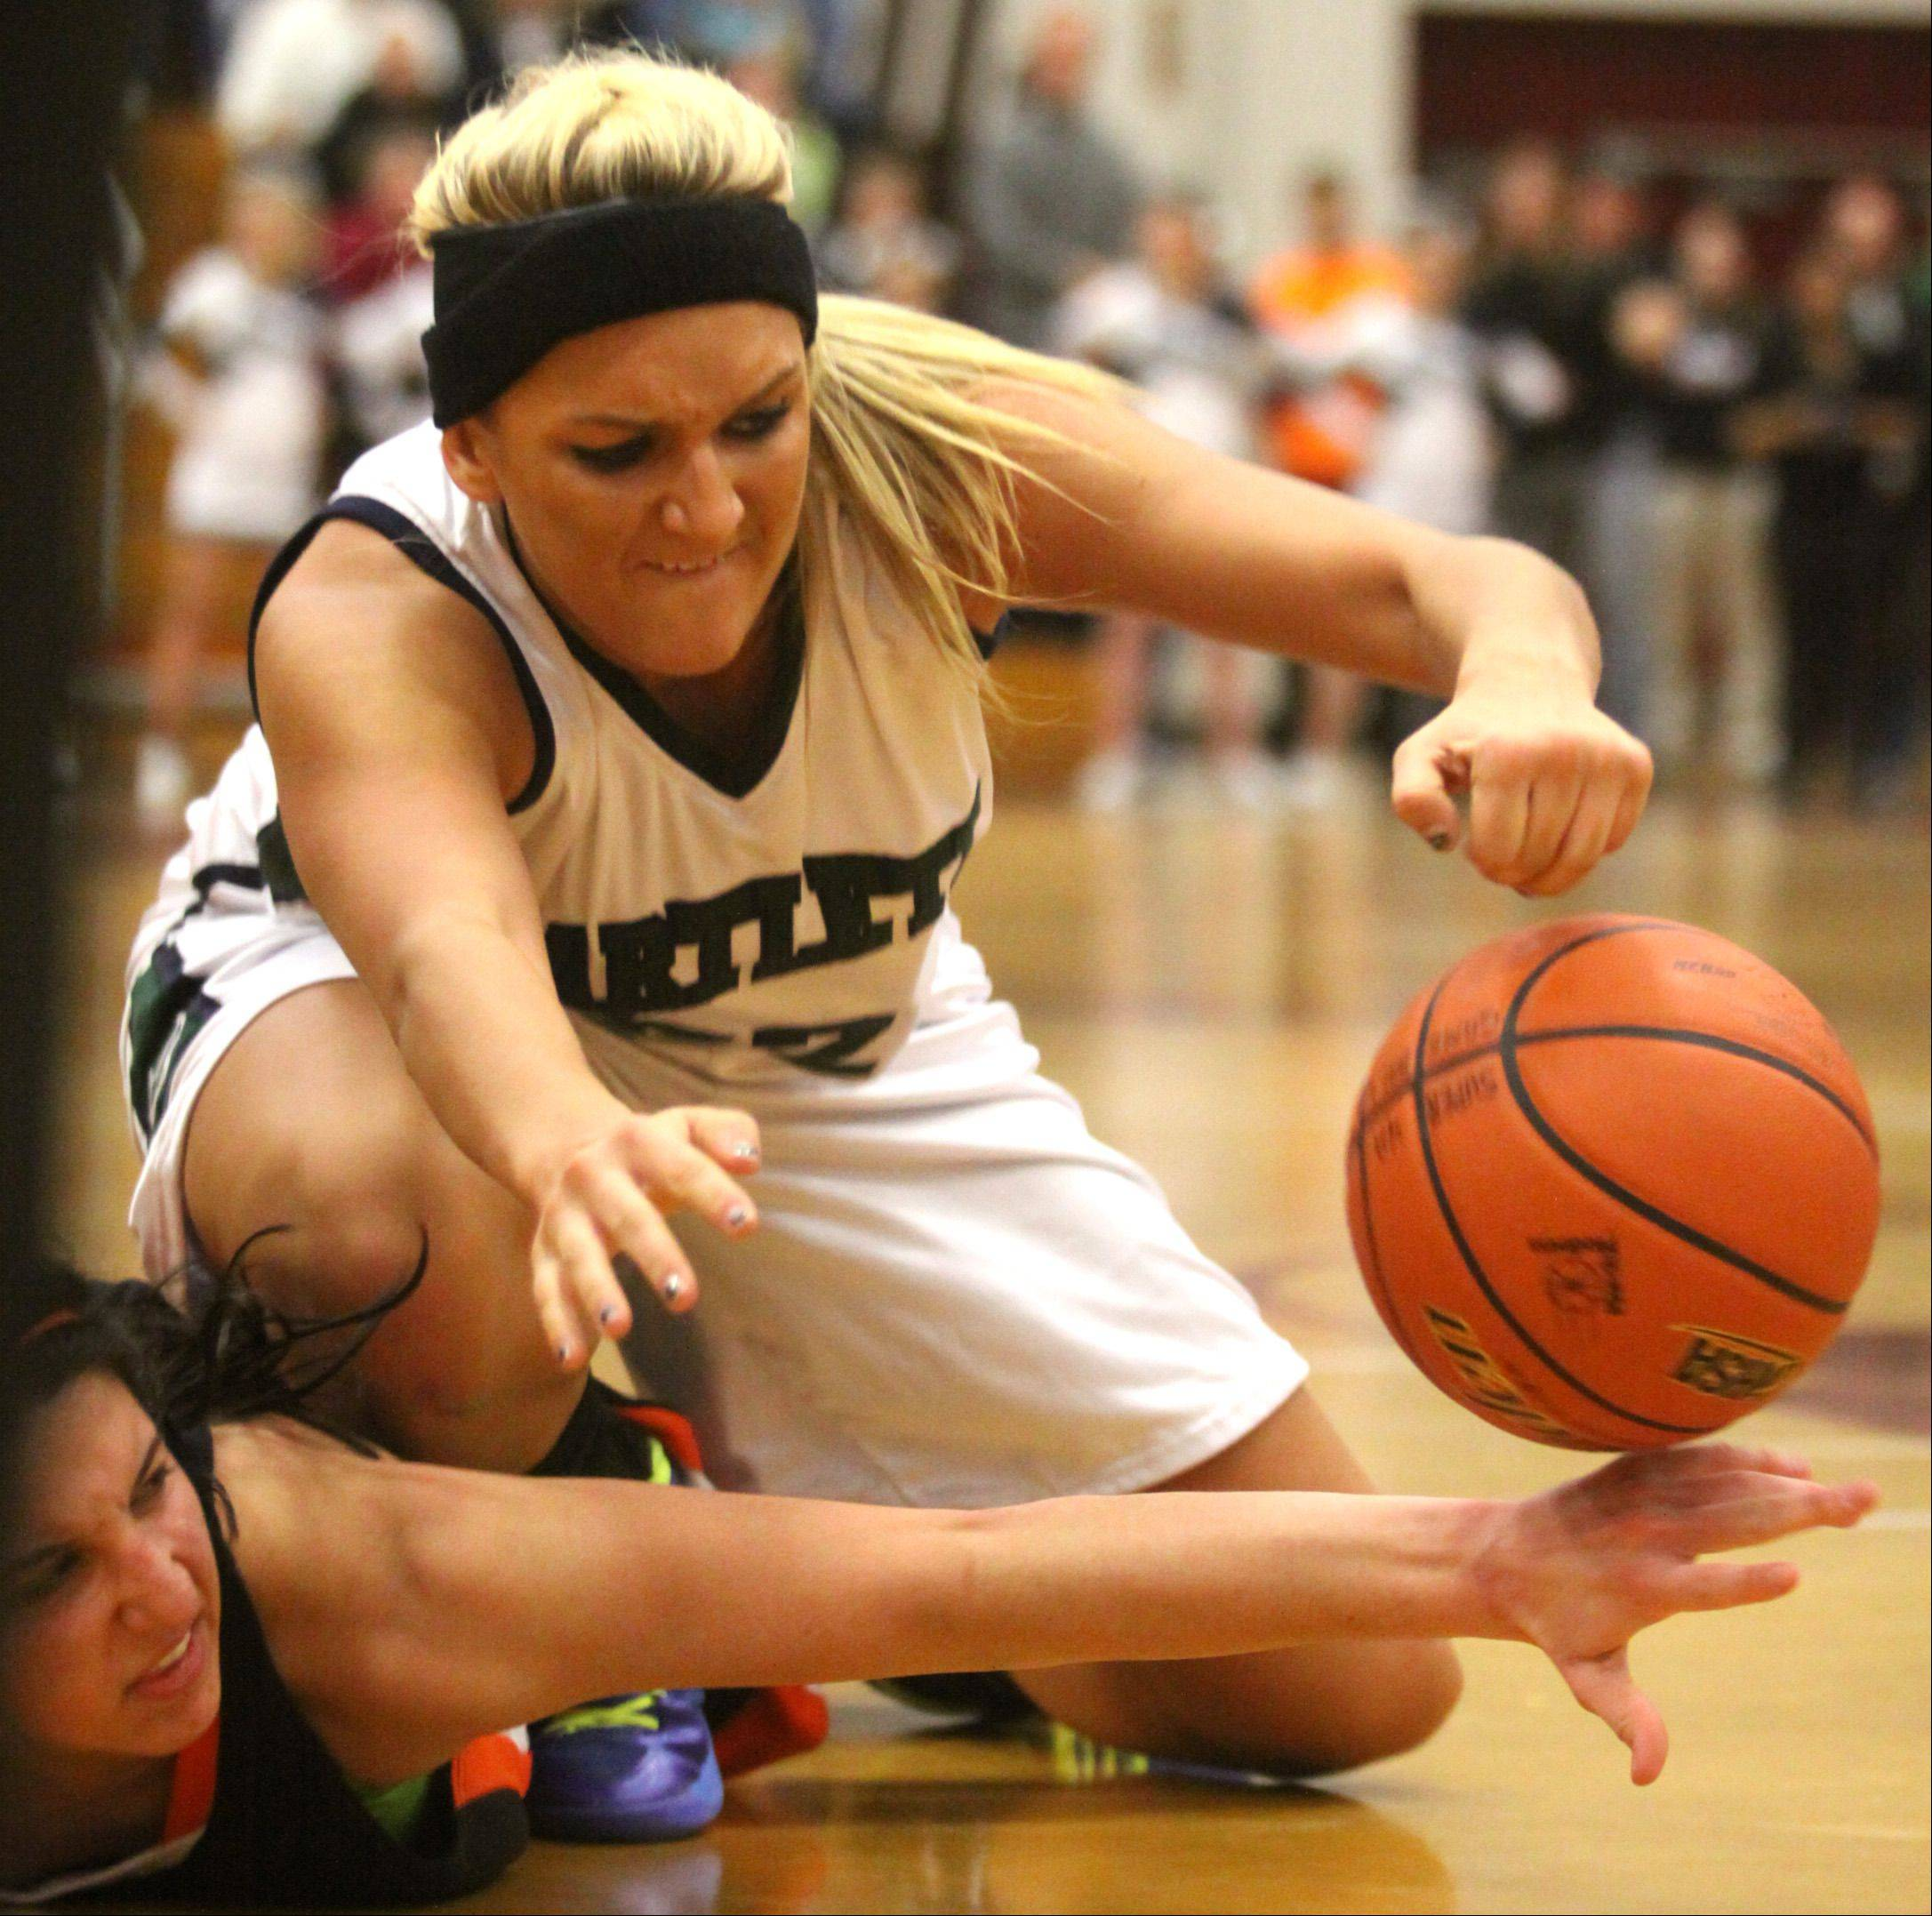 Haley Videckis of Bartlett lunges for the basketball during a supersectional against DeKalb at Chesbrough Field House in Elgin on Monday night.